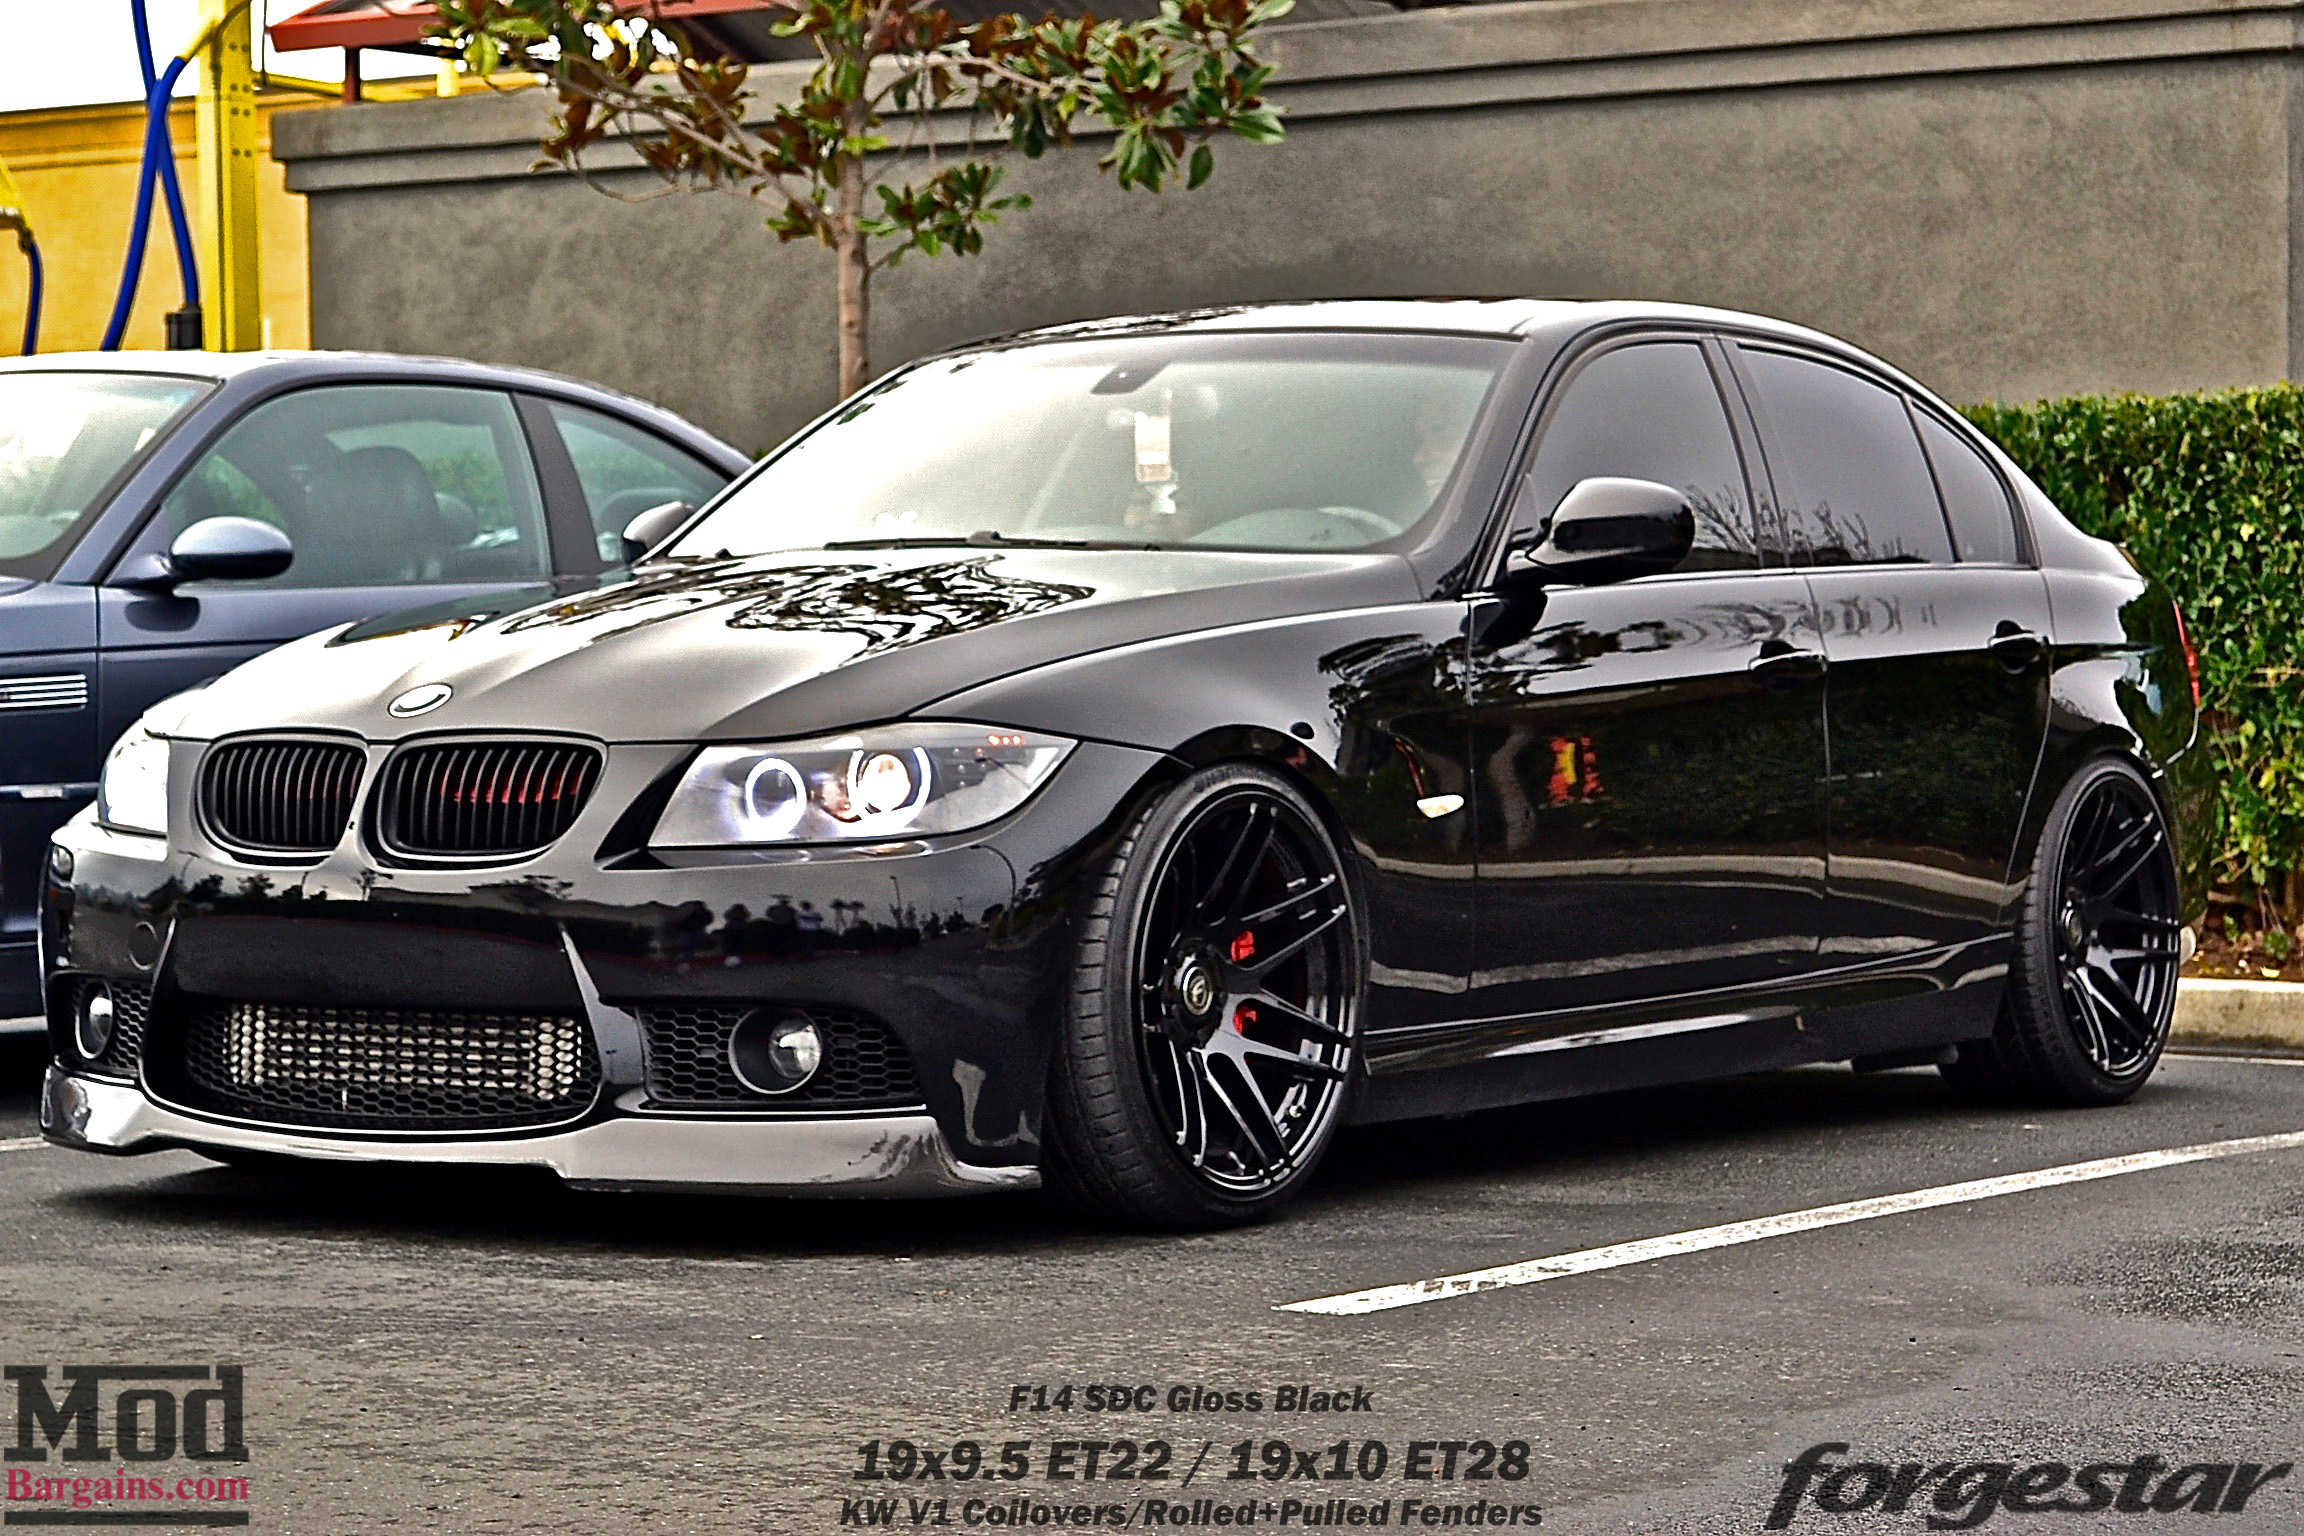 KW V1 Coilovers for 2007-12 BMW 3-Series [E90/E92] 10220032